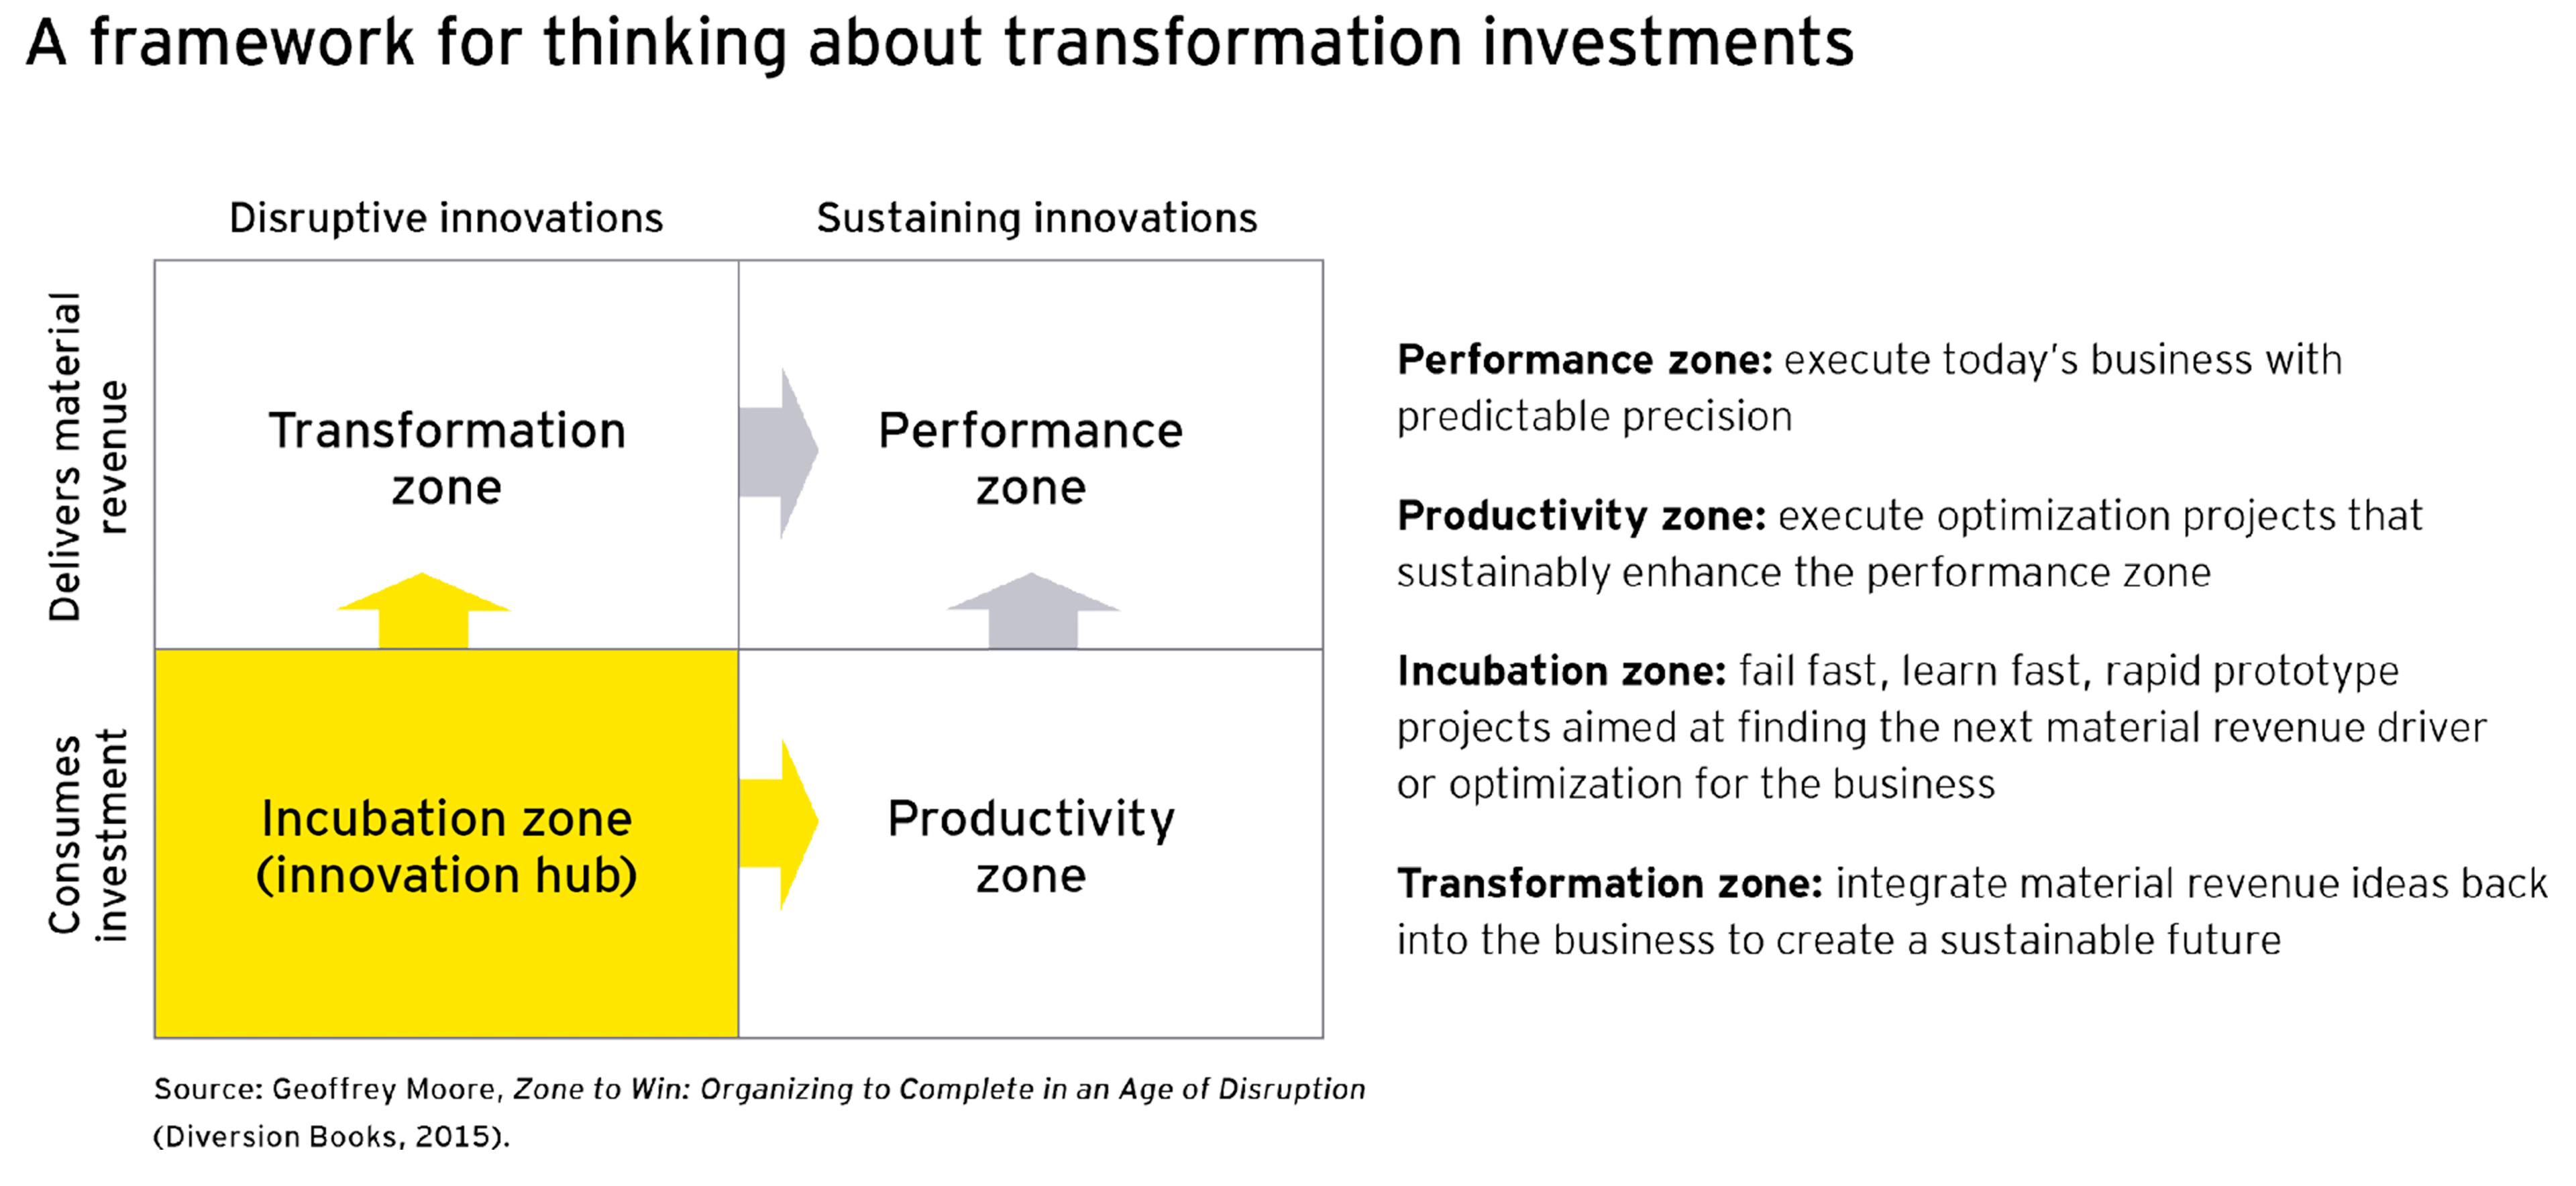 A framework for thinking about transformation investments